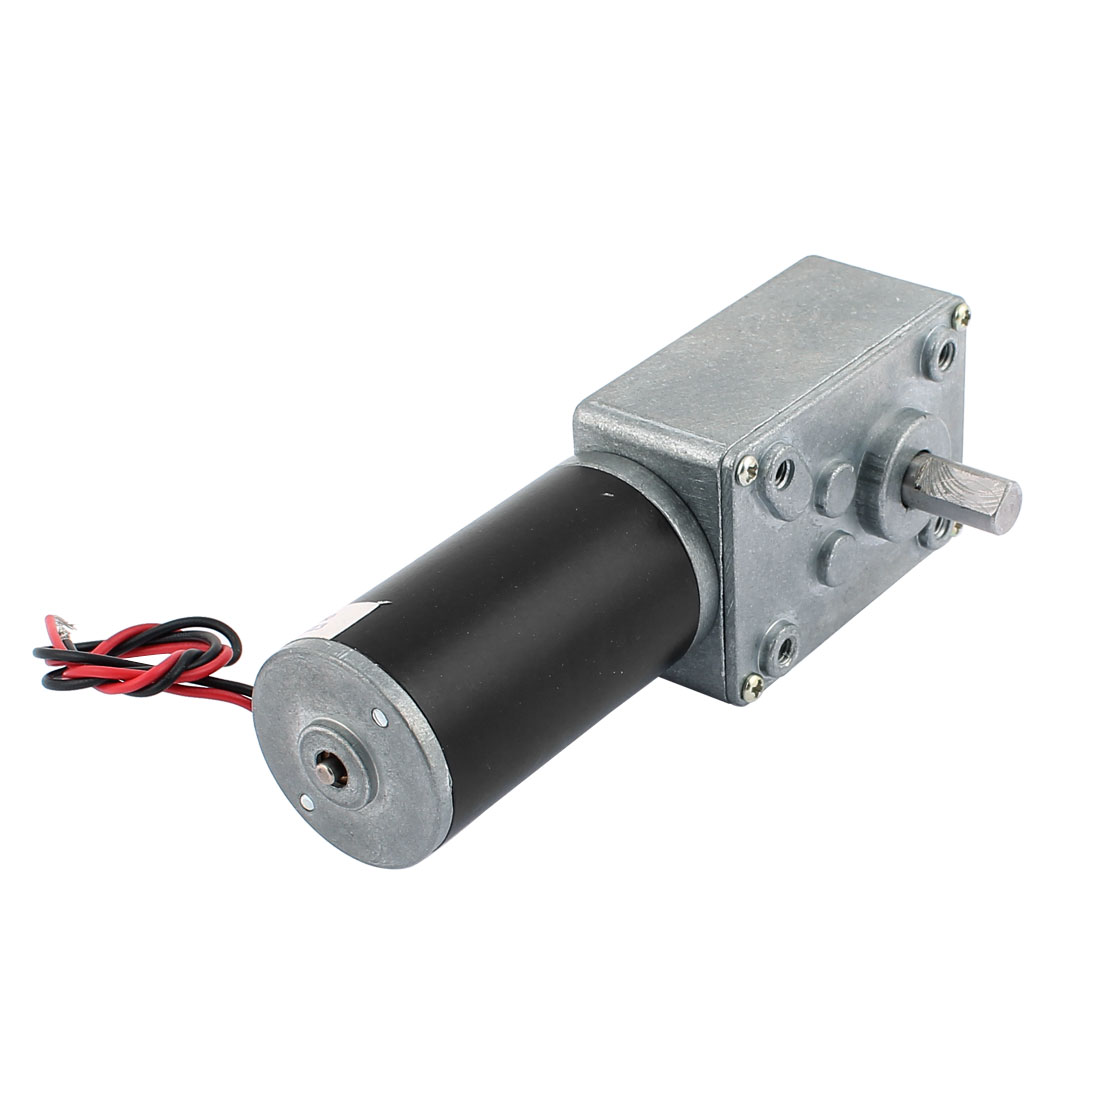 DC 12V 100RPM 8mmx14mm D-Shape Shaft Electric Power Turbo Worm Geared Motor